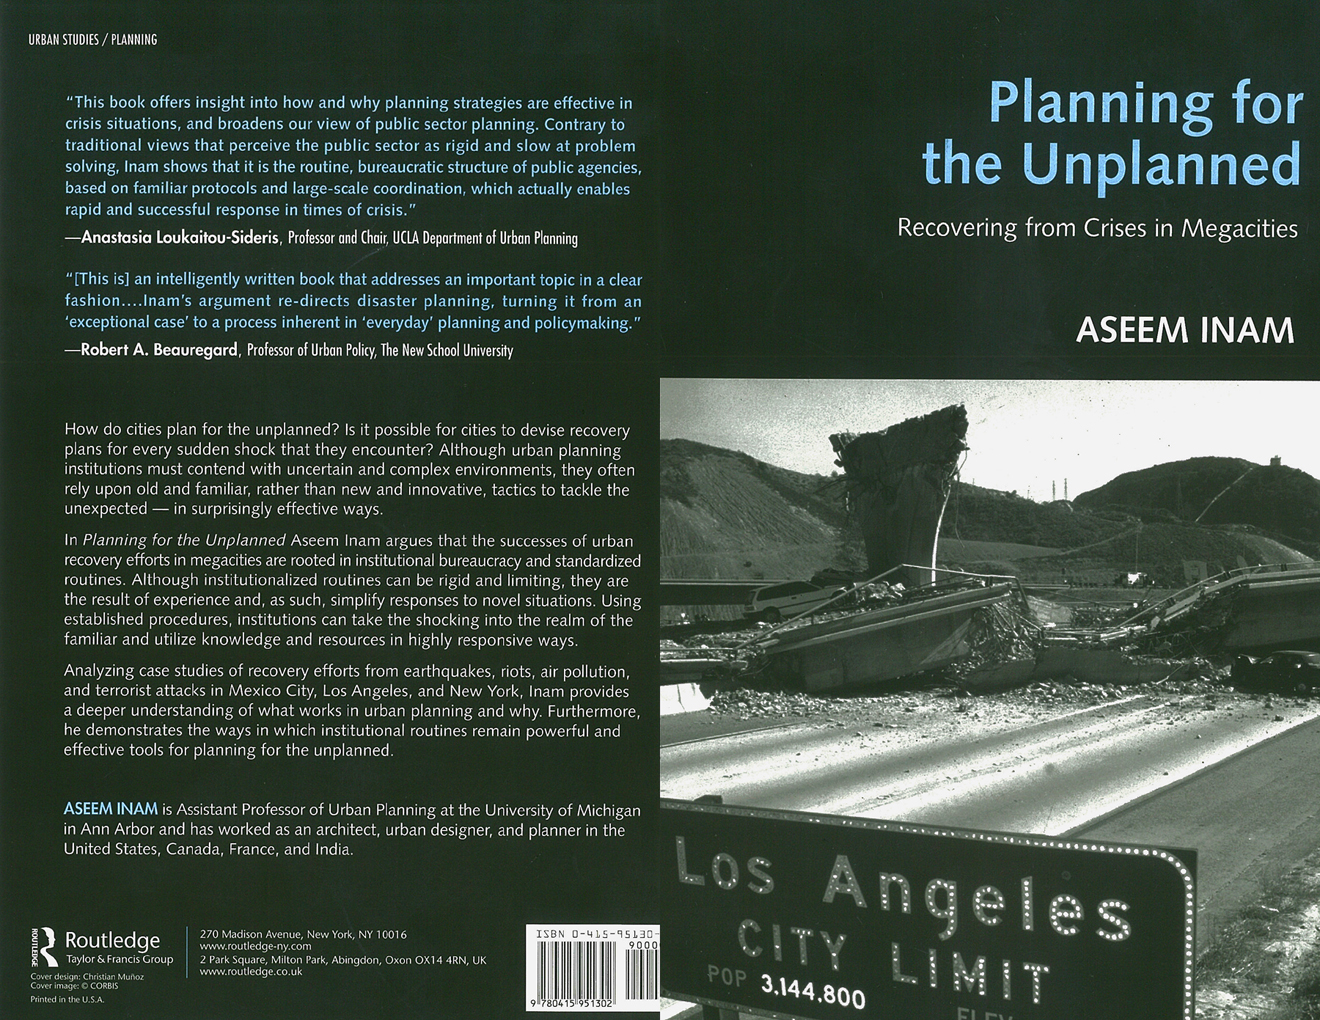 The book,   Planning for the Unplanned: Recovering from Crises in Megacities  , analyzes examples of successful housing rebuilding after earthquakes in Los Angeles and Mexico City, but also failed attempts at addressing critical economic development and air pollution challenges in both cities. Source: Aseem Inam.